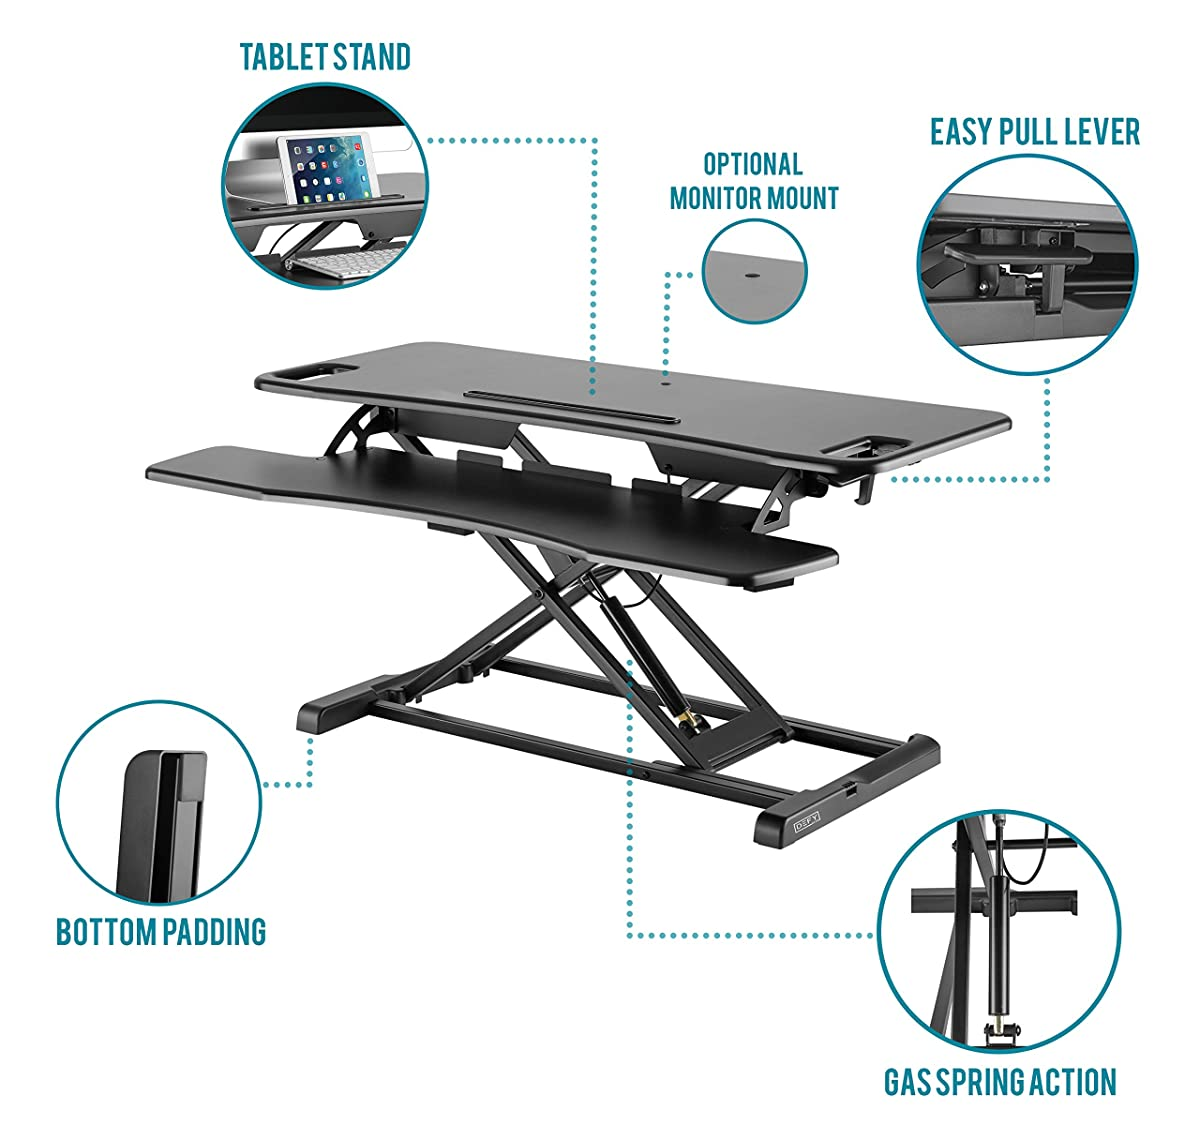 "Height Adjustable Standing Desk Converter Ergonomic Sit Stand Black Riser Large Table Top Size 37"" inch Gas Spring Workstation Anti Fatigue up Down Position Dual Monitor Computer Shelf Home Office"